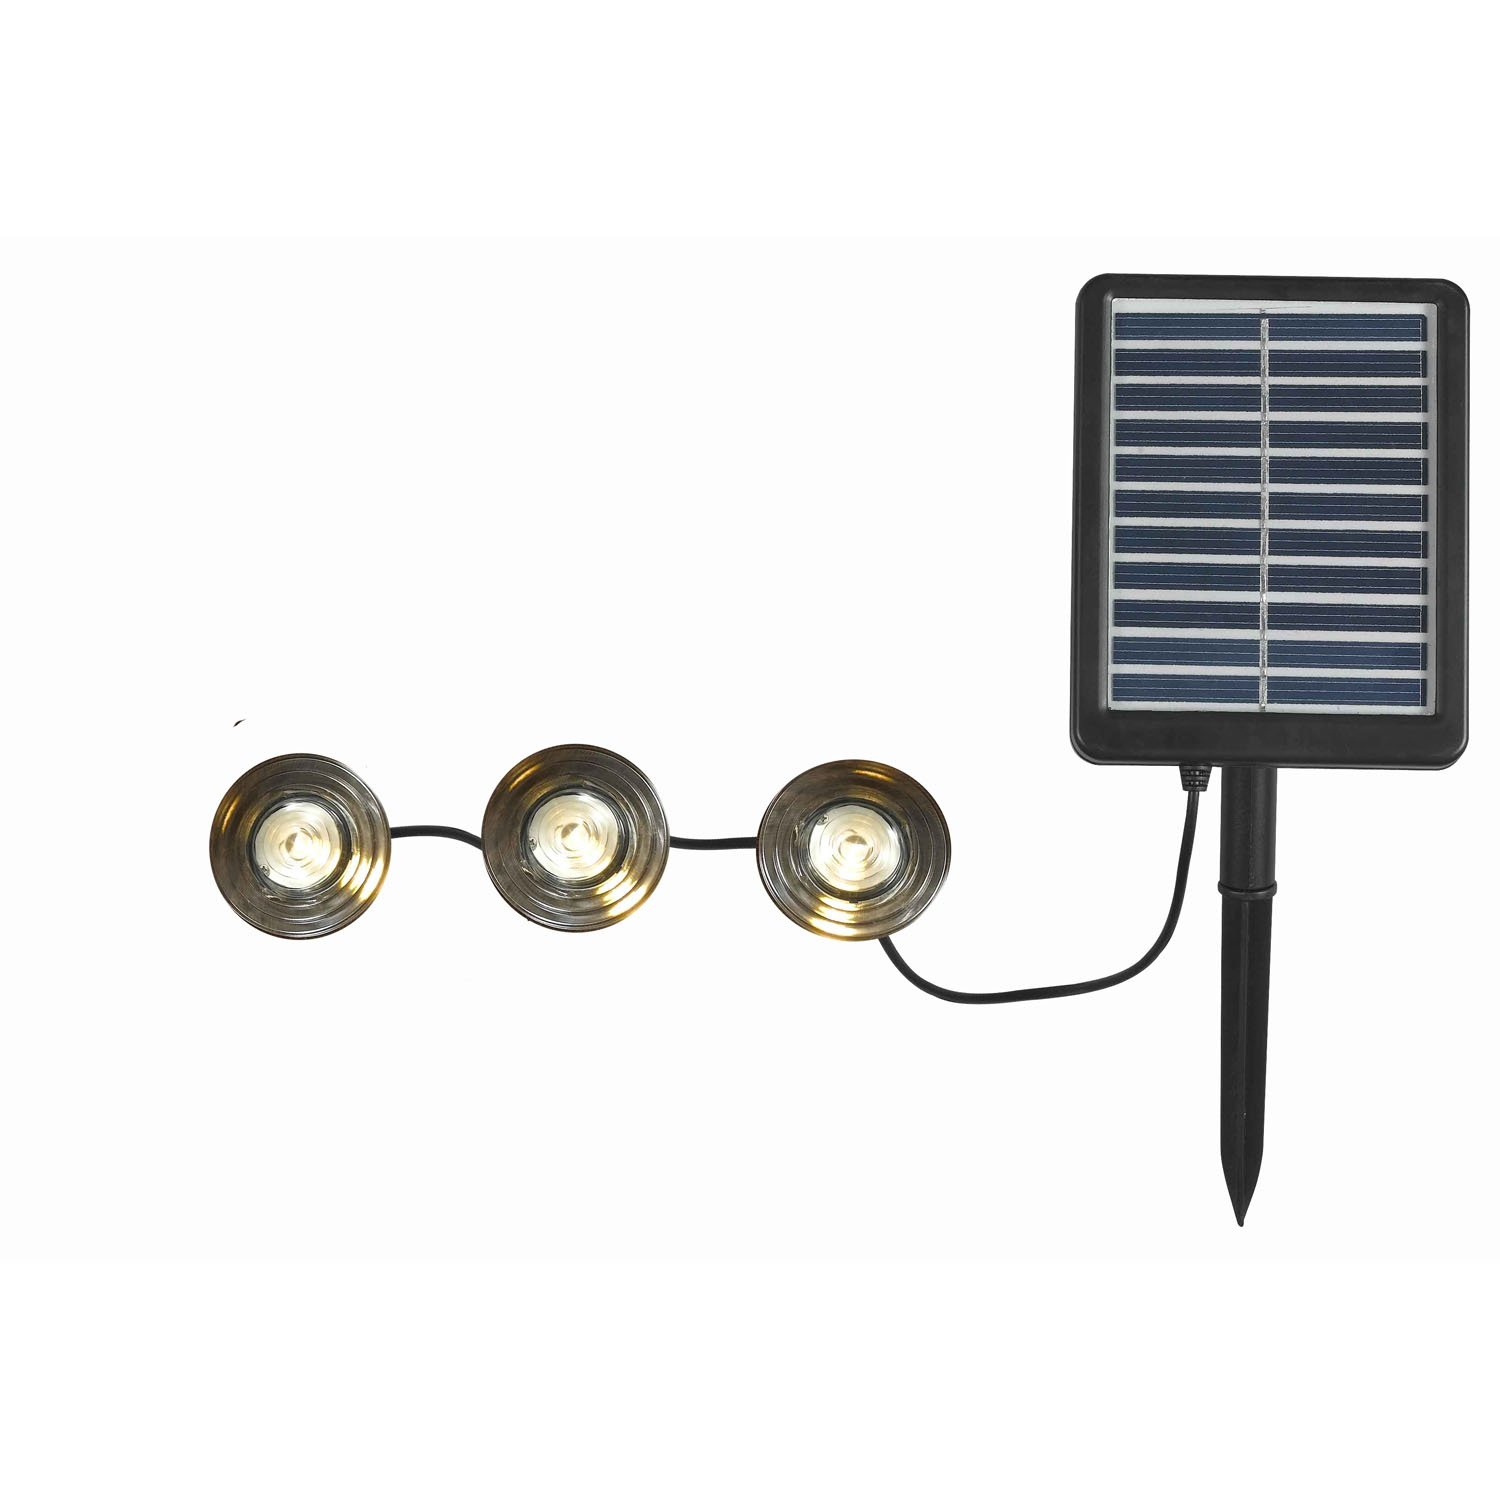 Kenroy Home M11879 3-Light Deck and Path Solar Set with Panel